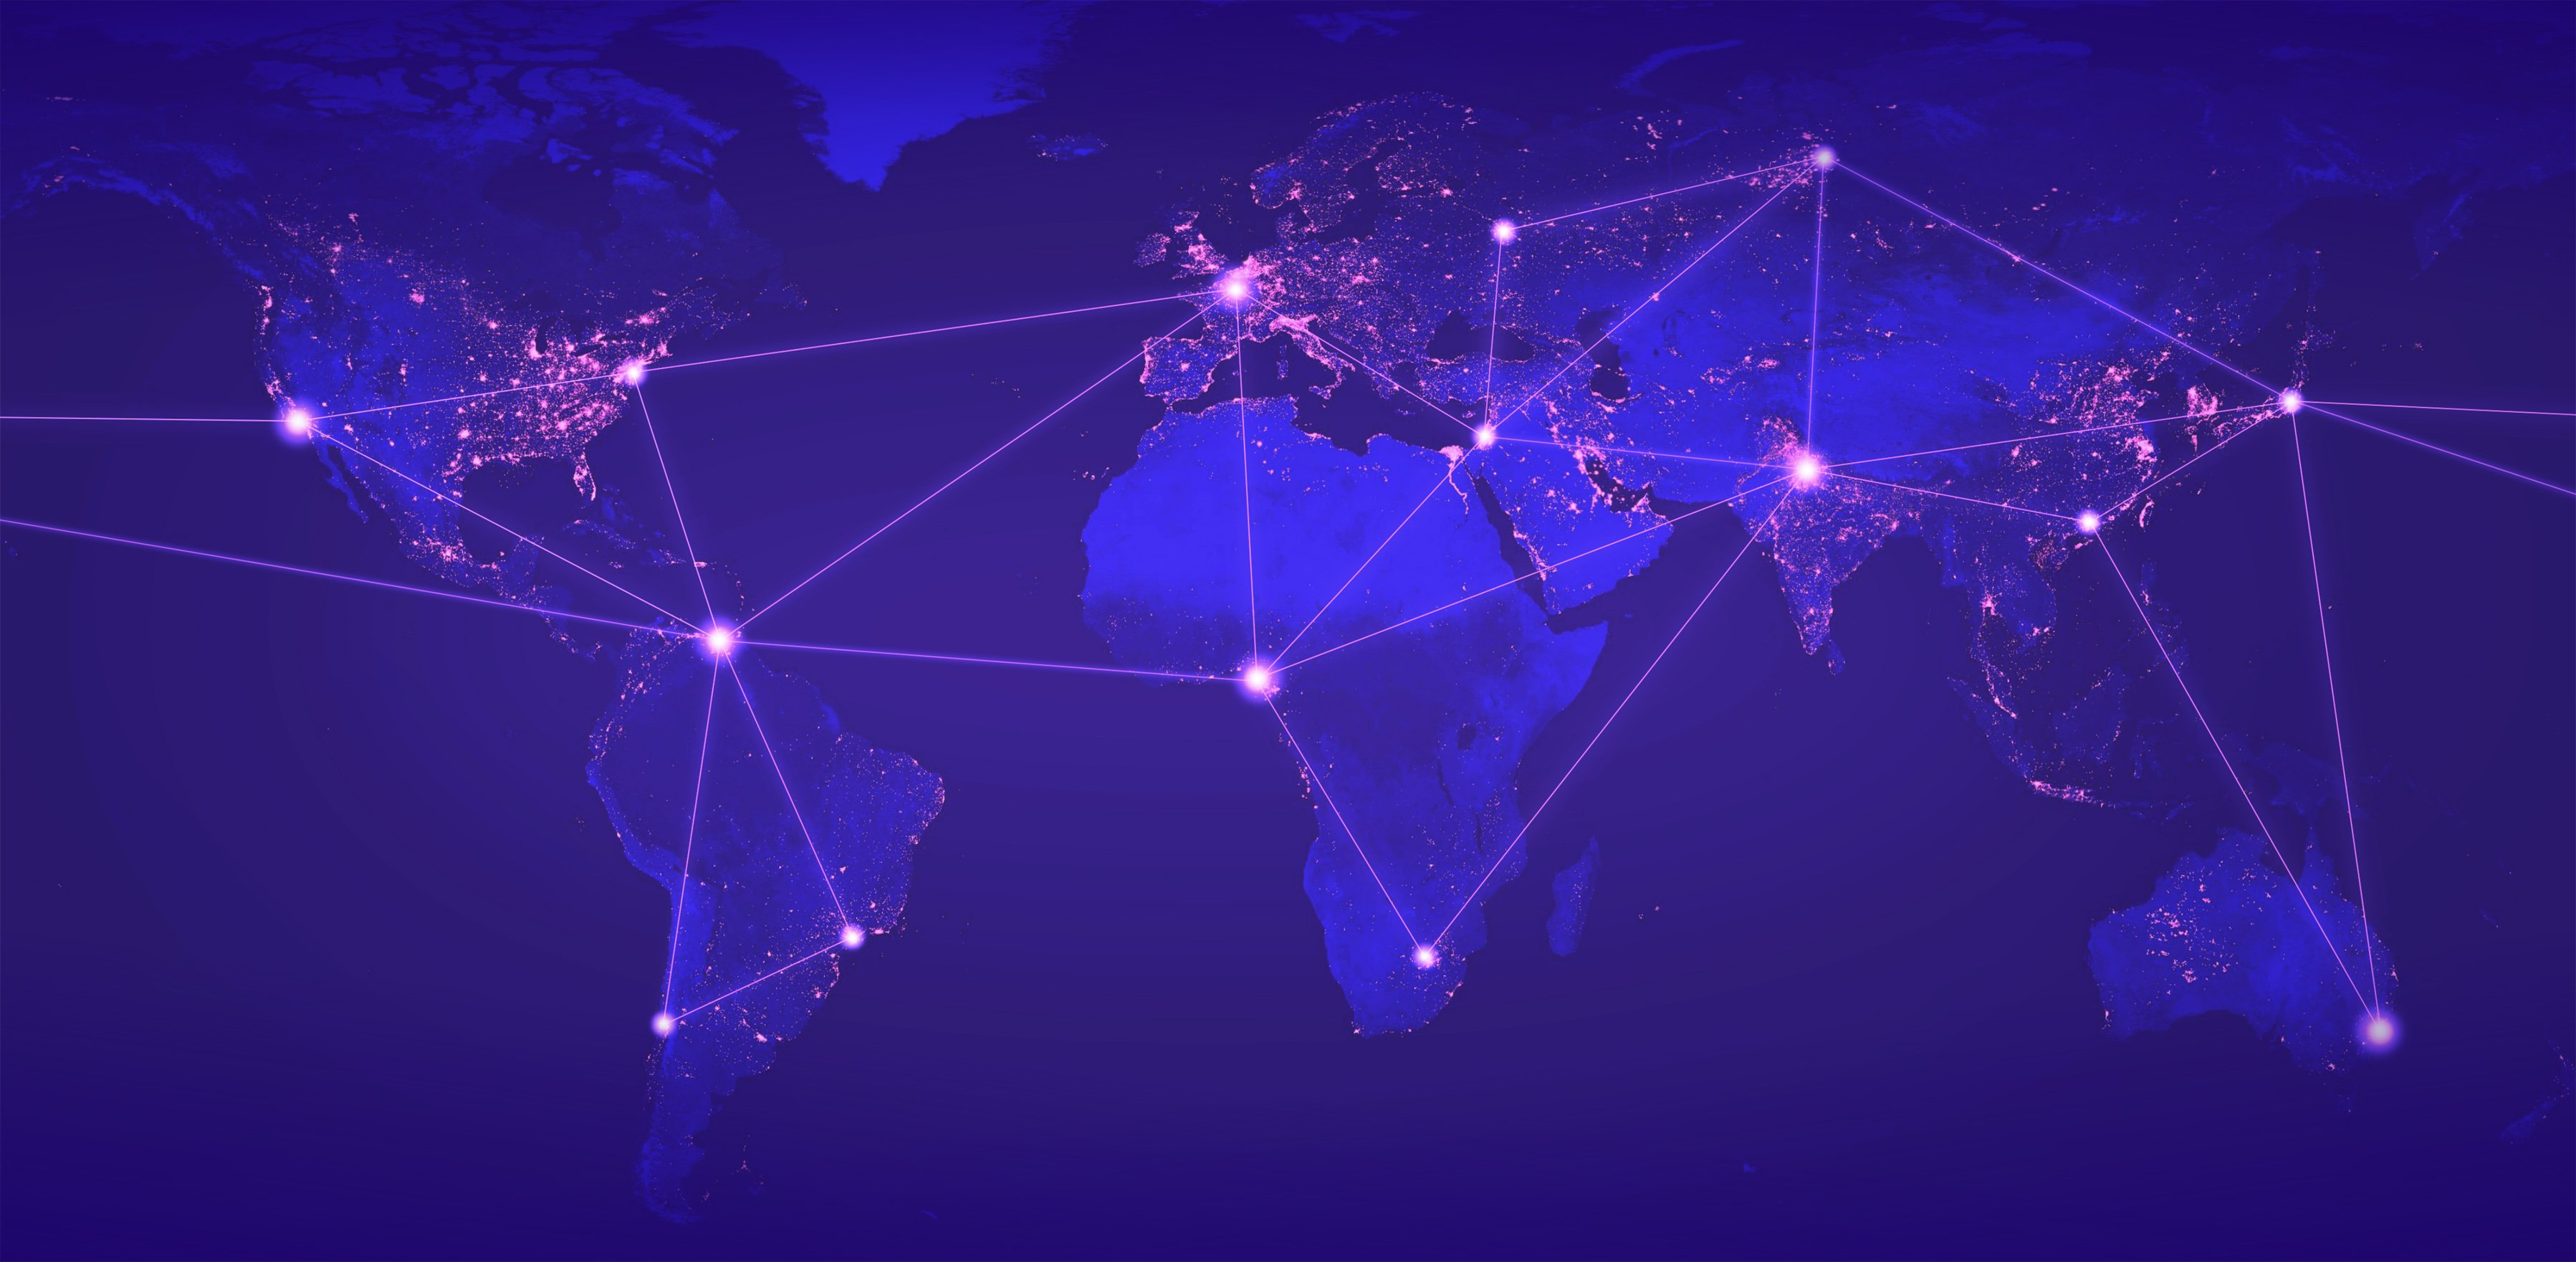 Global_Networks_-_Globalization_-_Digital_Networks